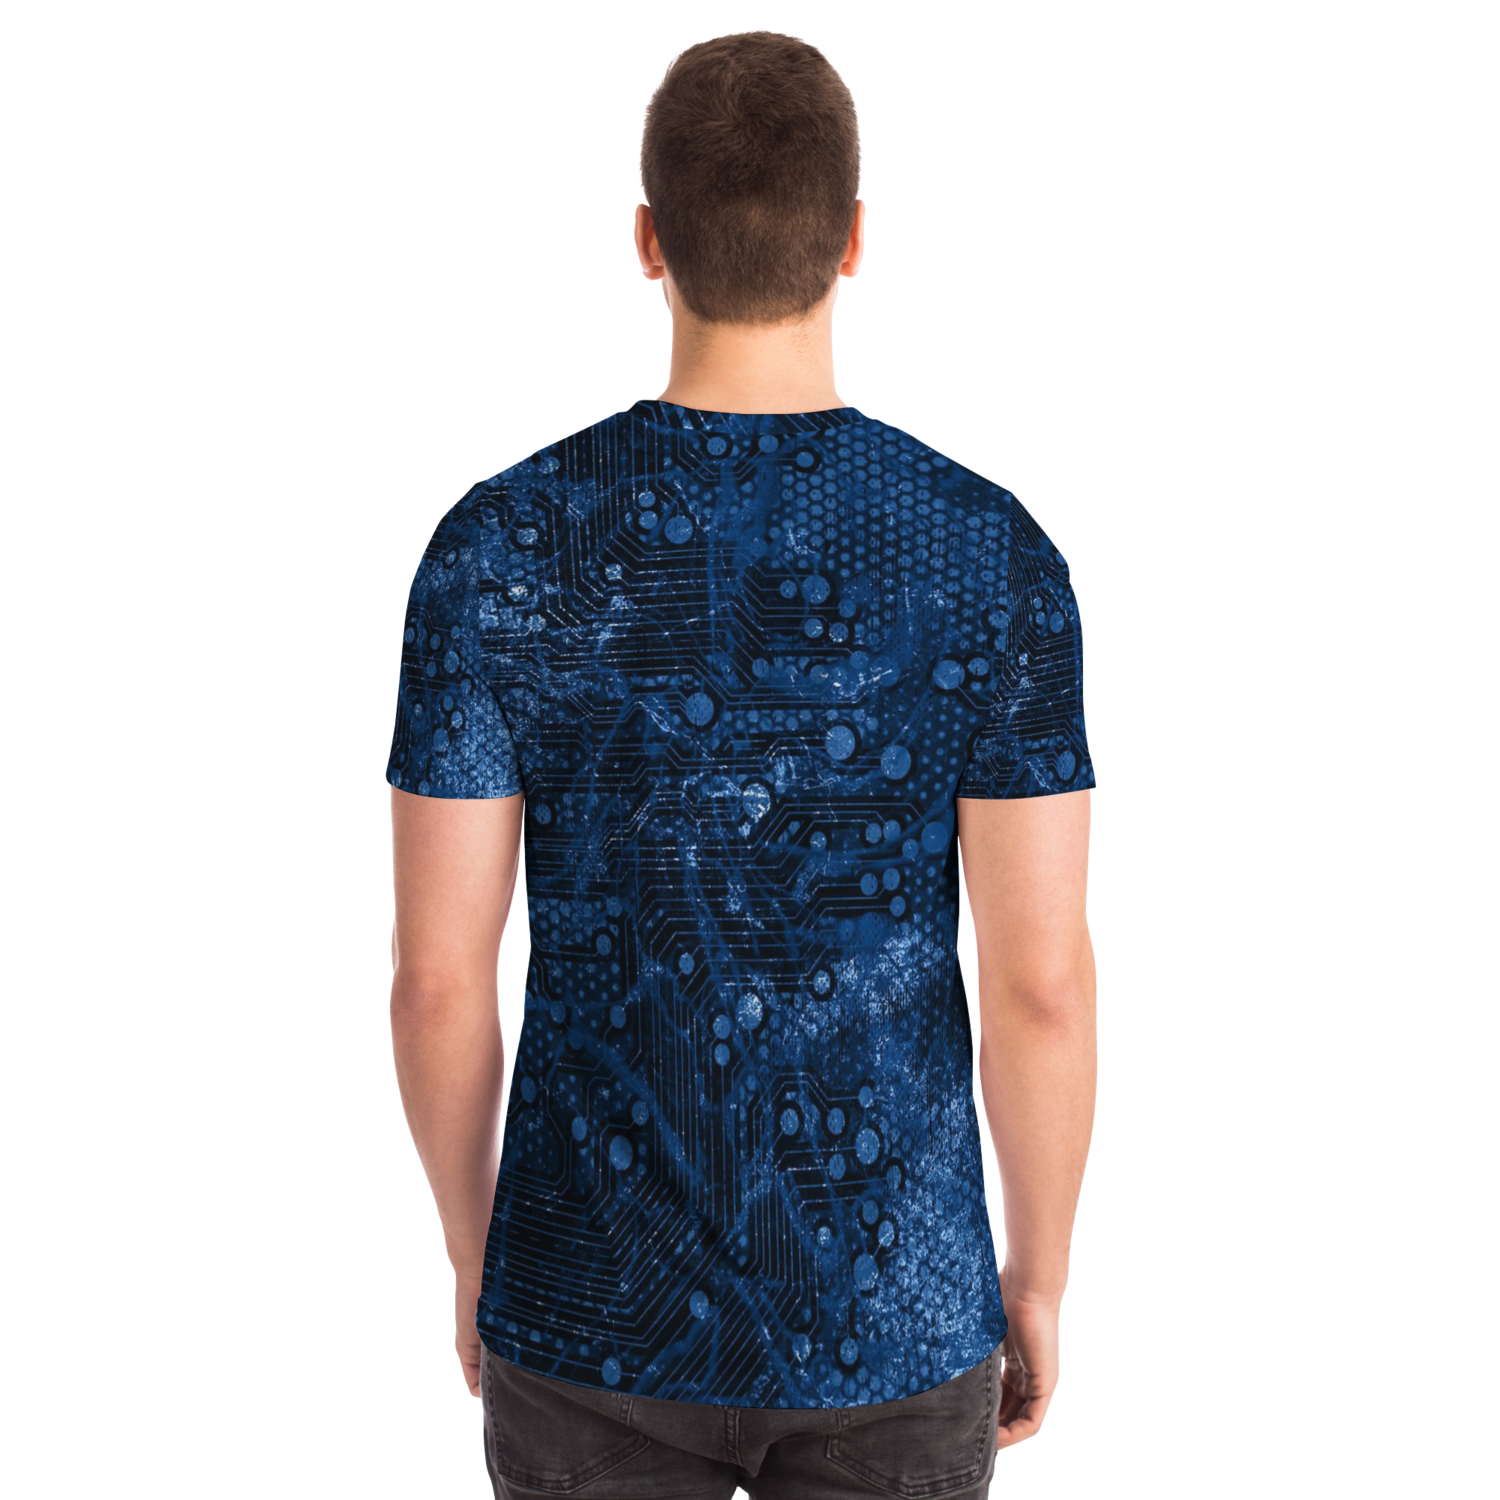 Digital Dimension T-Shirt